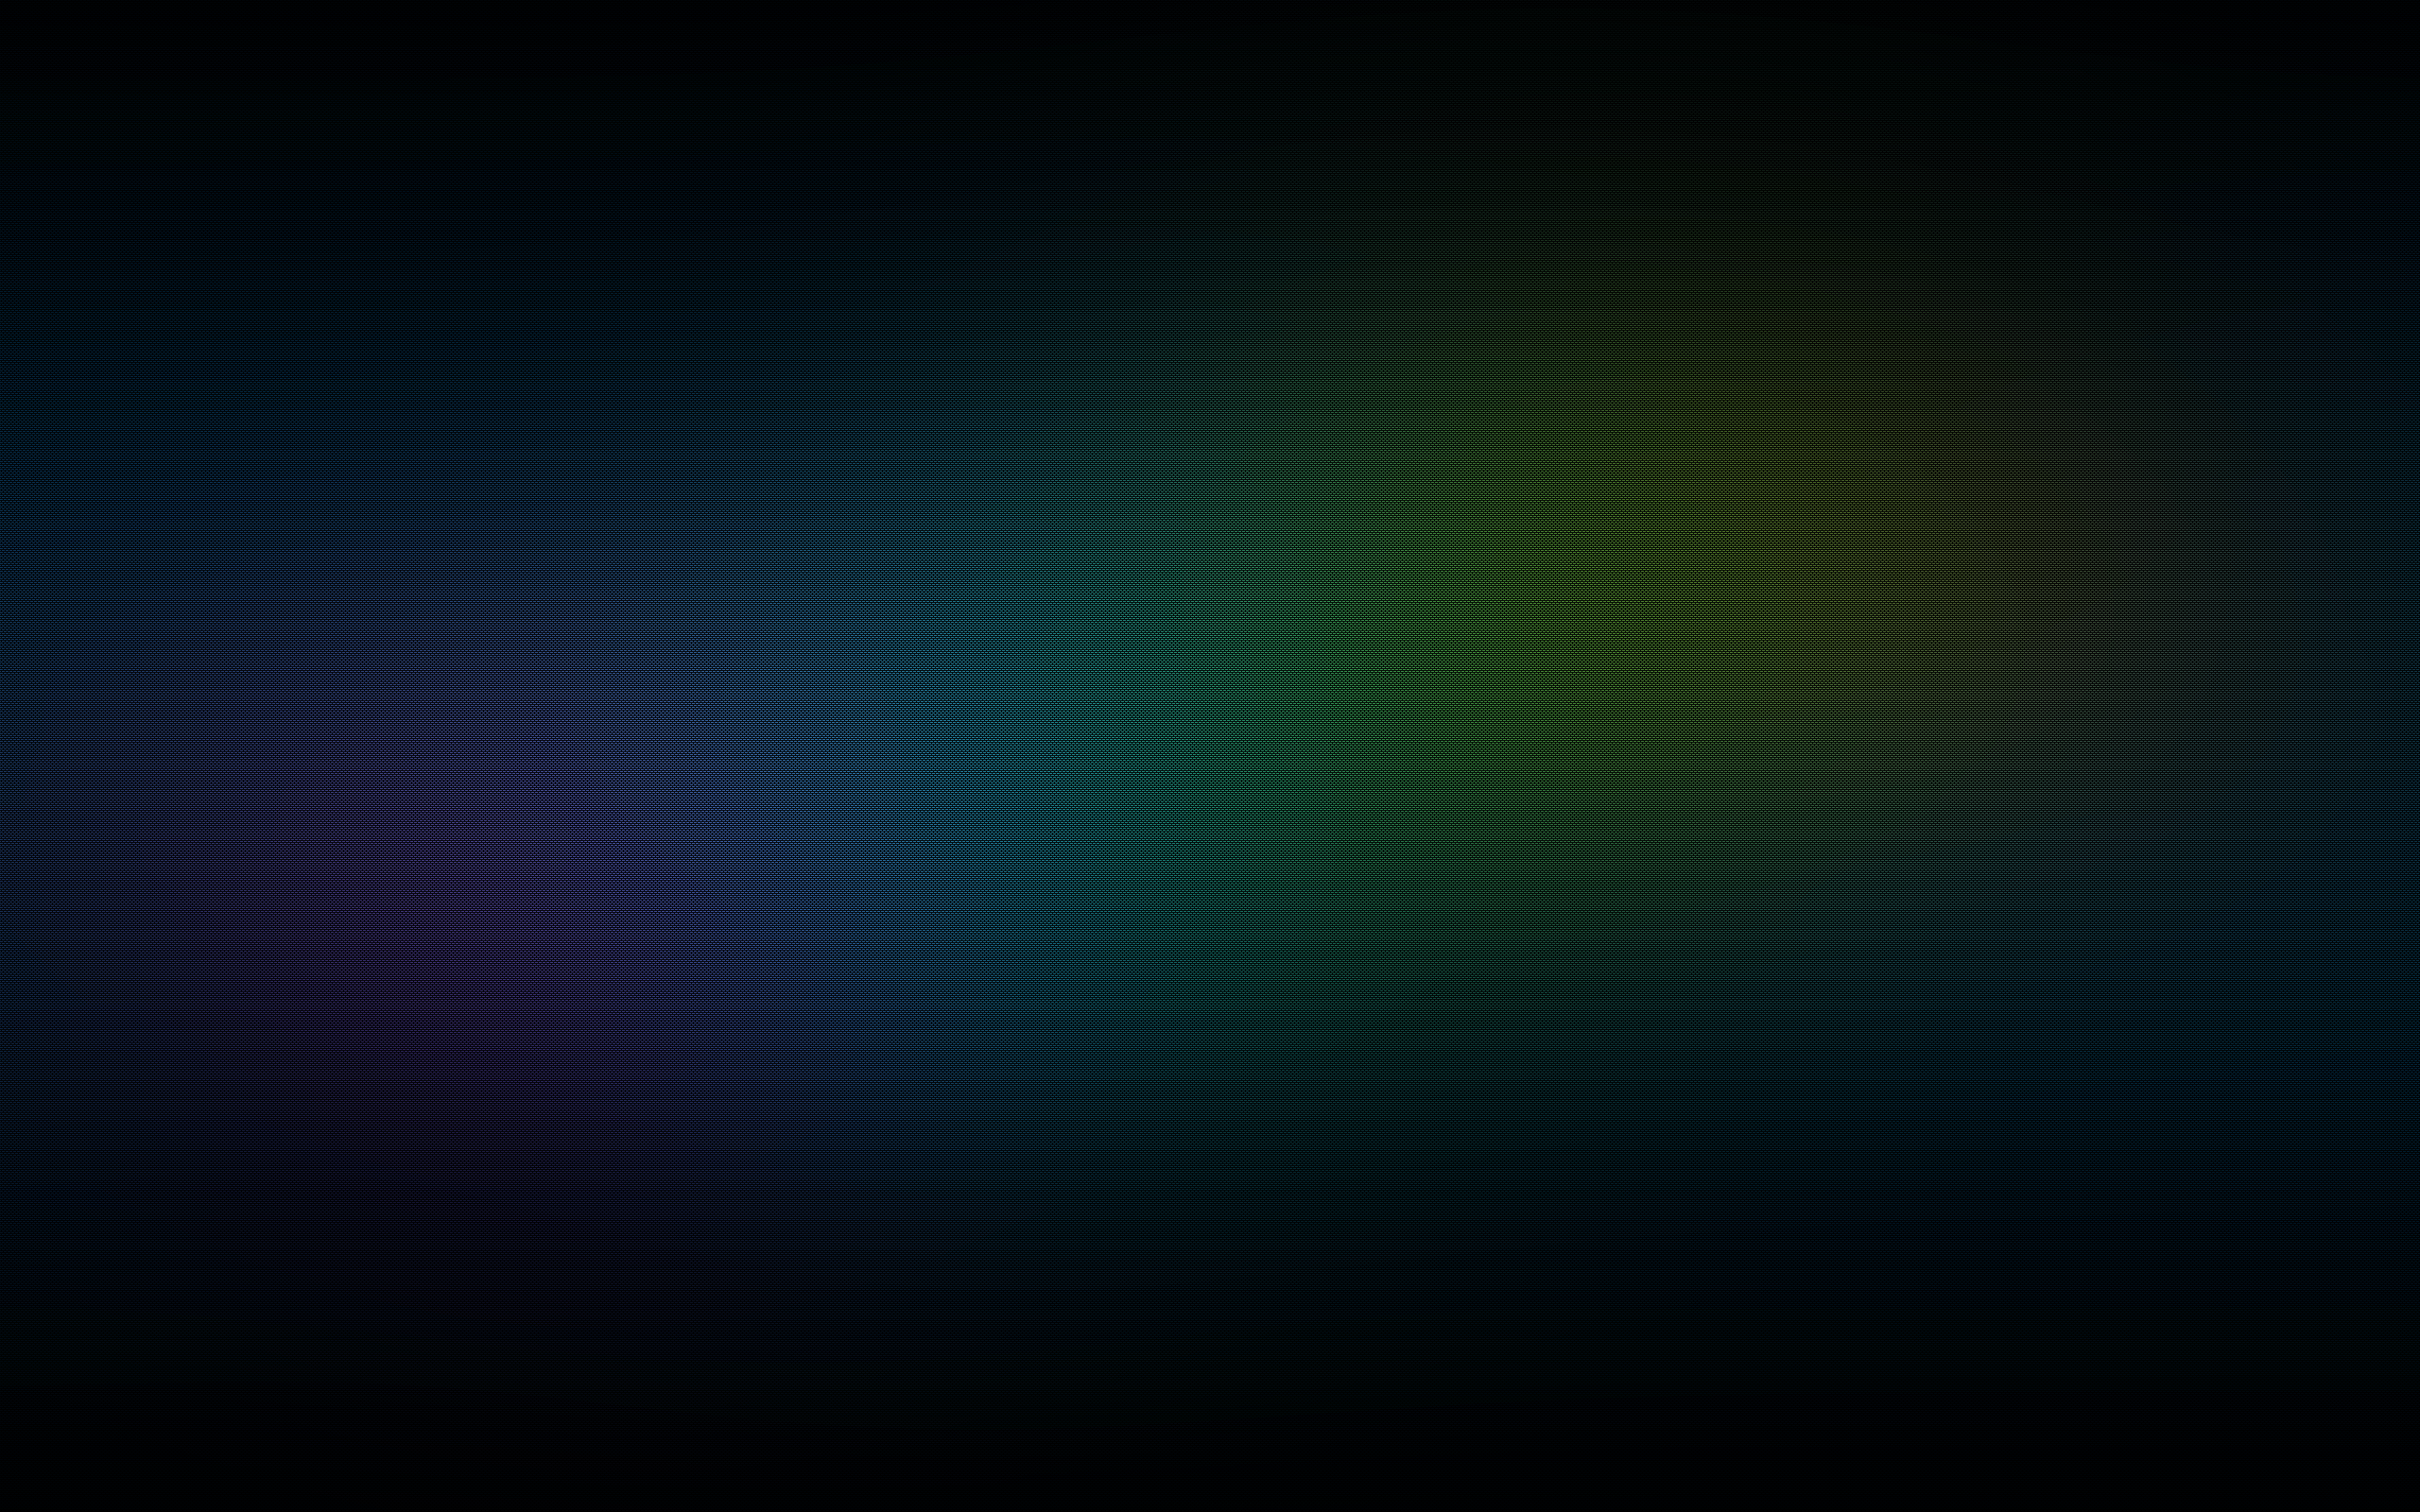 gaussian Blur blurred HD Wallpaper